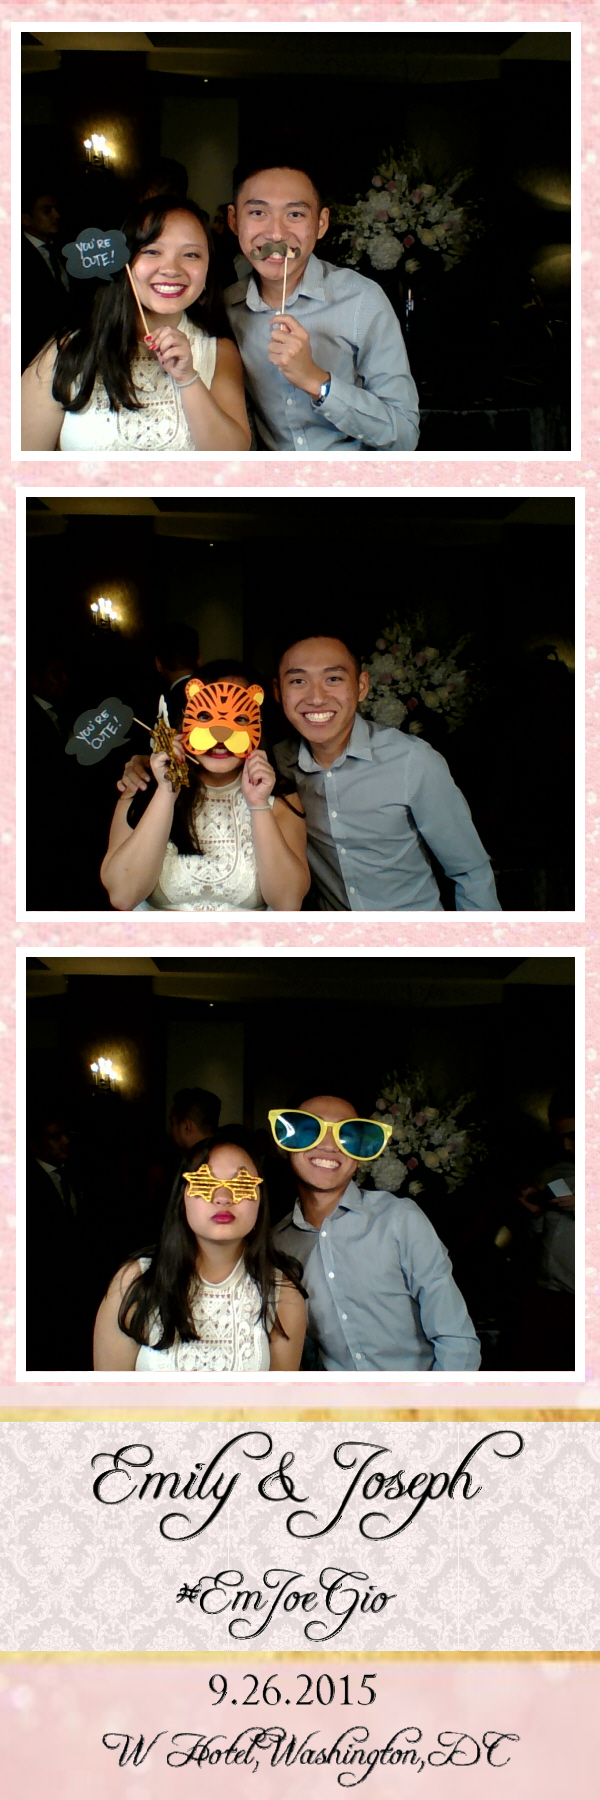 Guest House Events Photo Booth E&J (62).jpg